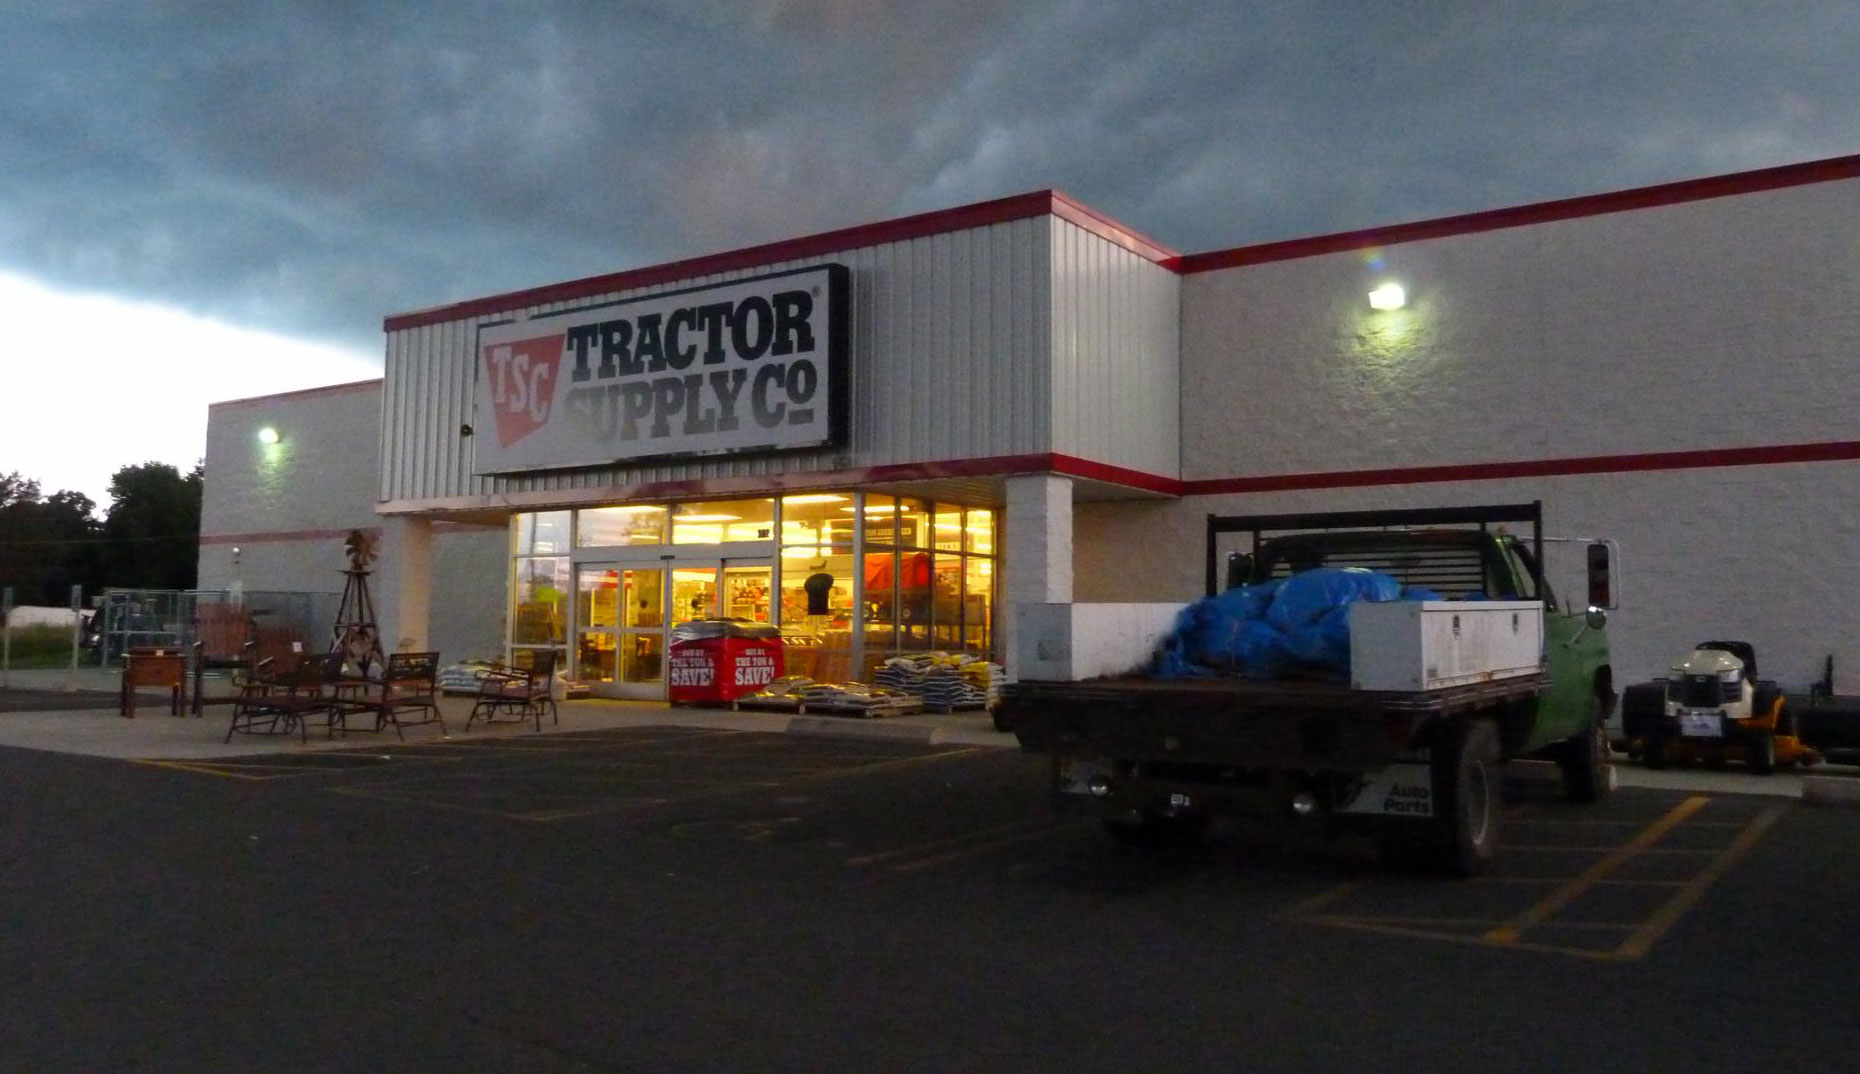 Watch Top Gear Online >> Online shoppers prefer Tractor Supply web over Amazon ...